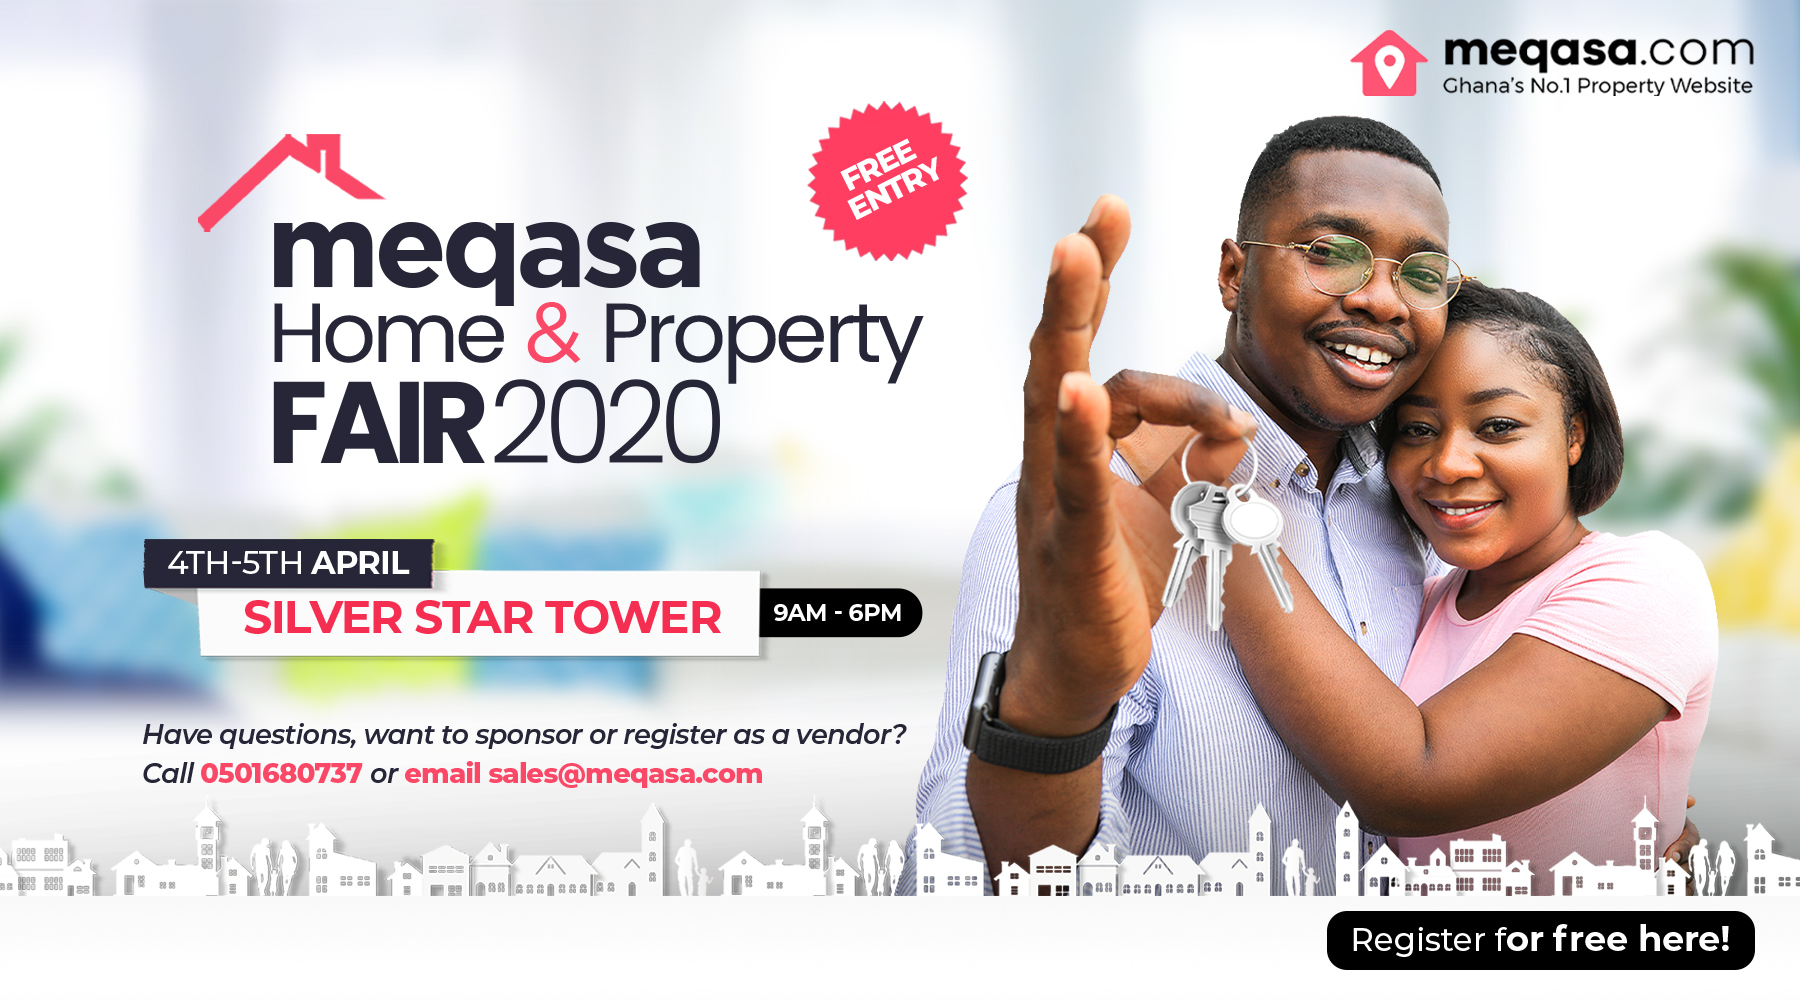 Register for meqasa home & property fair 4th - 5th April 2020. silver star tower. 9am - 6pm. Free Entry